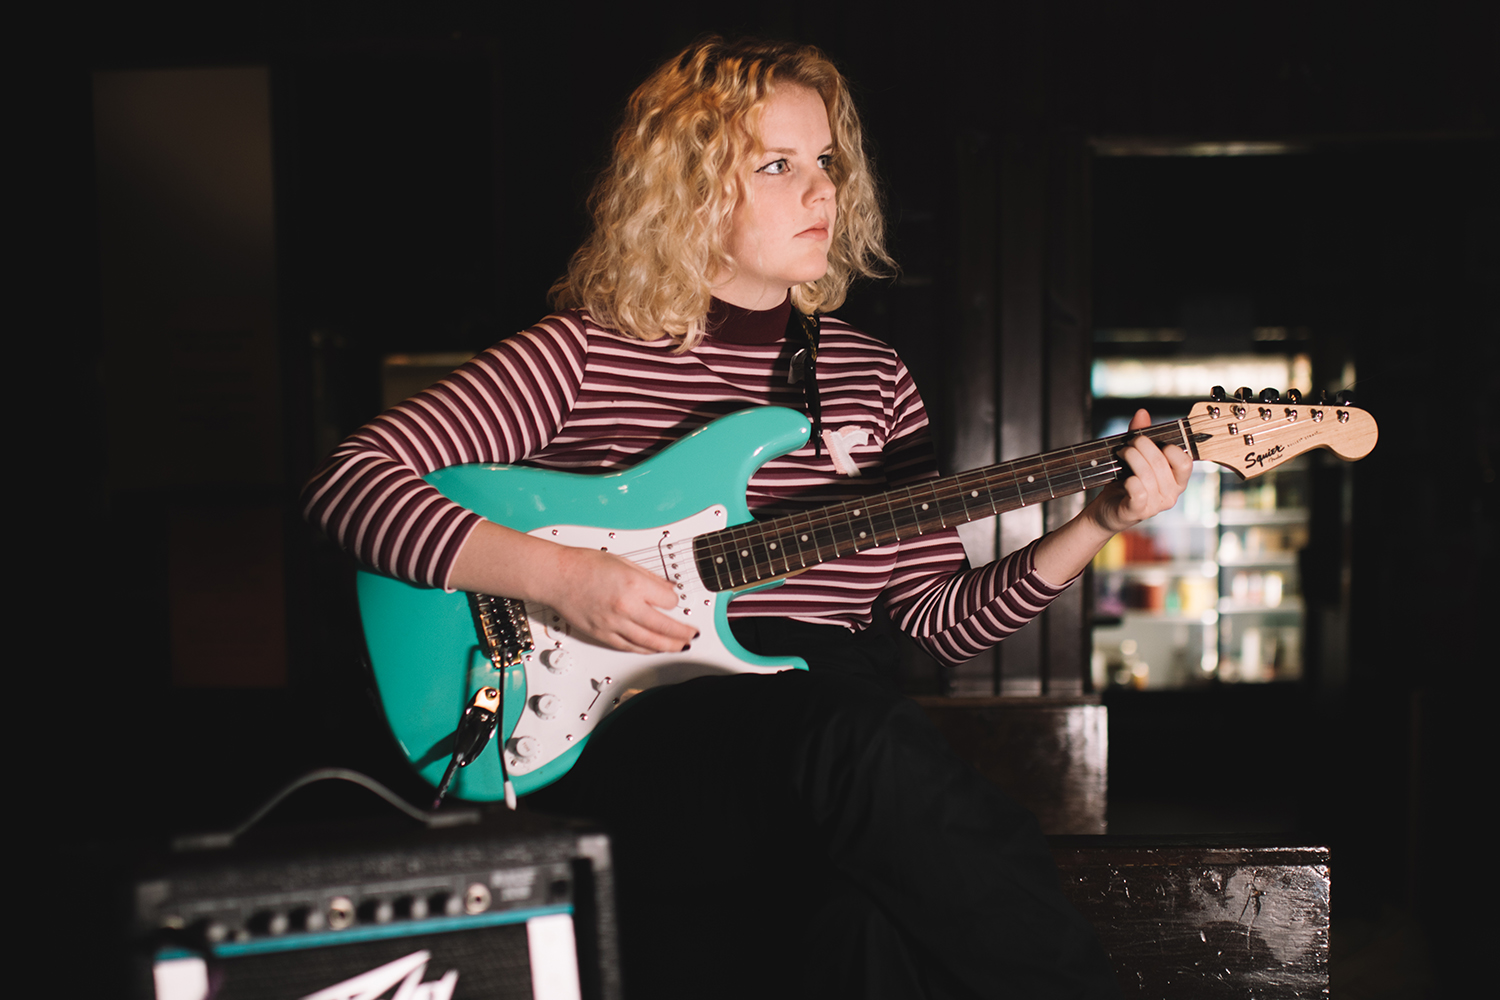 Elly Hofmaier plays her guitar at The Mill-Iowa City on Wednesday, February 27, 2019.